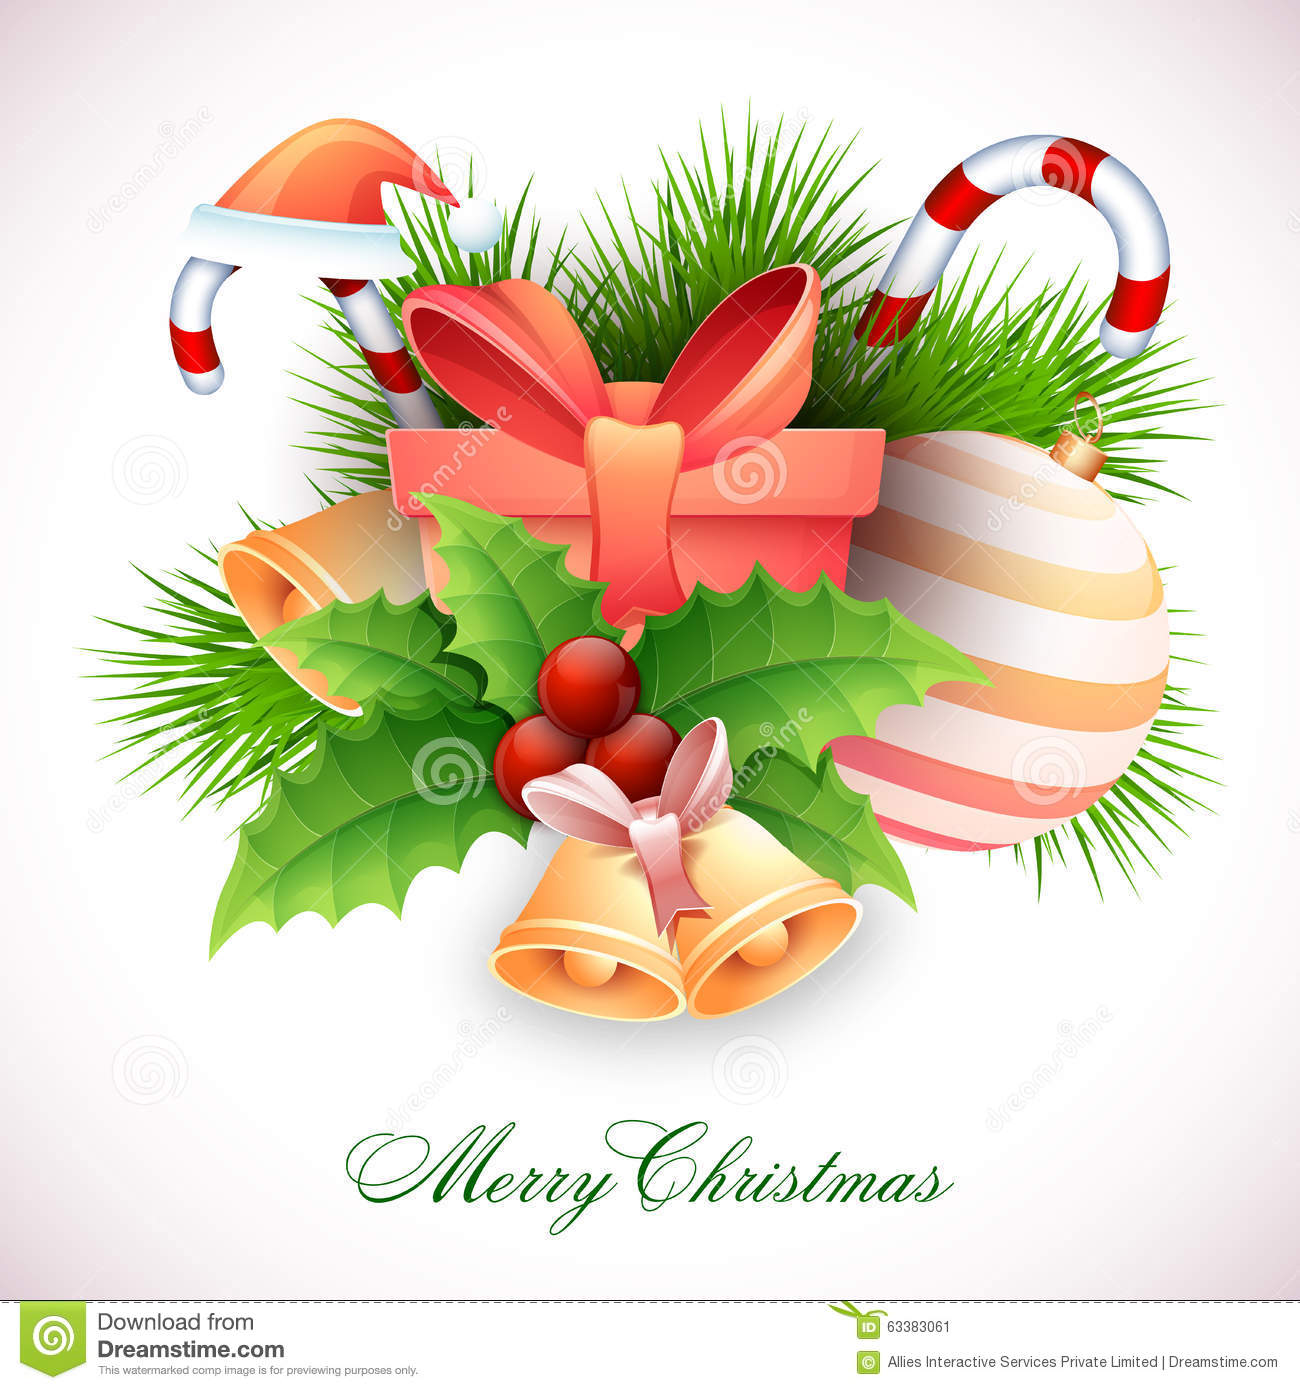 Greeting Card With Ornaments For Merry Christmas Stock Illustration